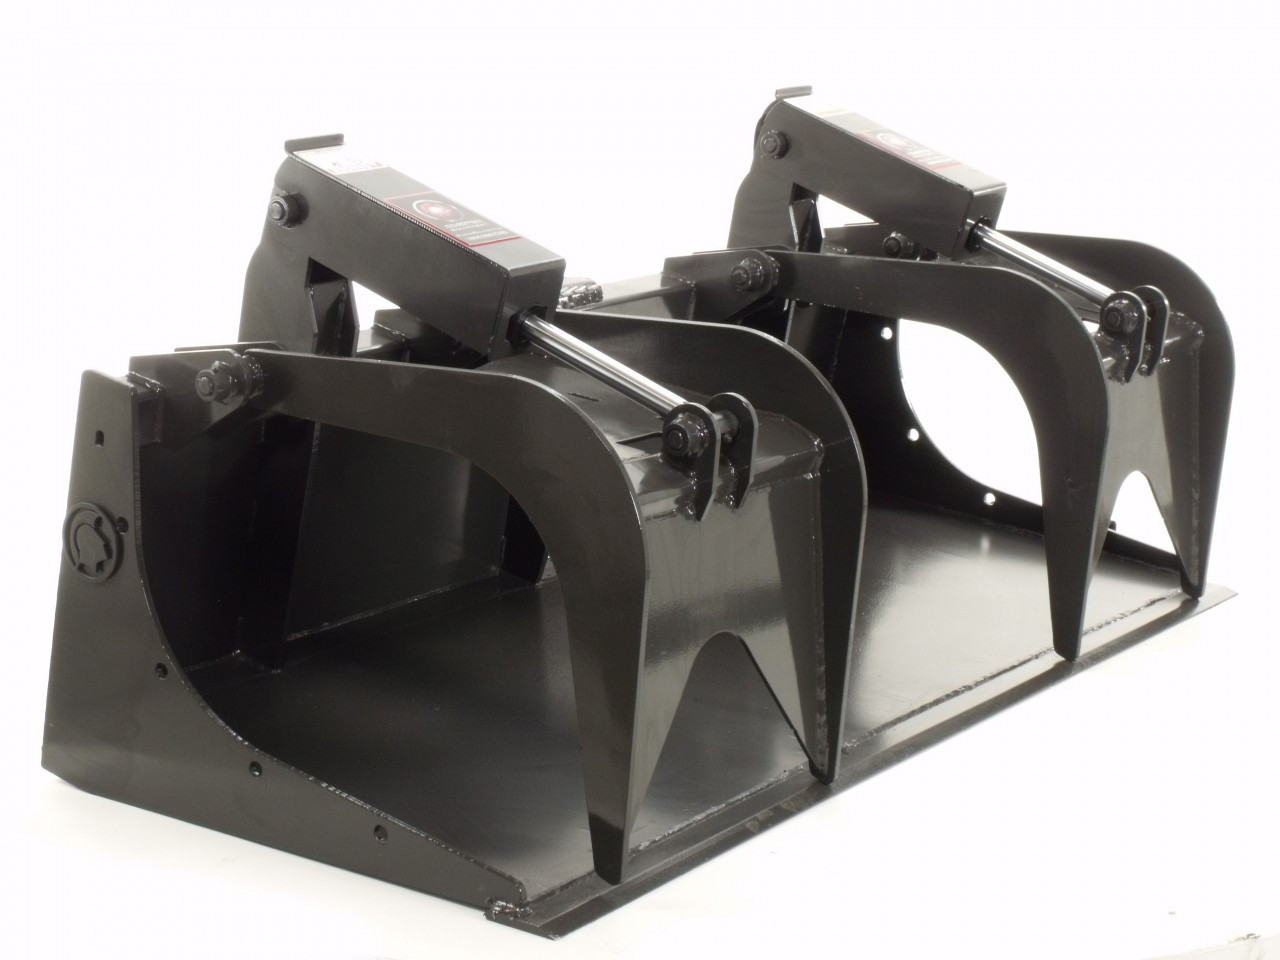 "Skid Steer Grapple Bucket Attachment 66"" Wide Economy Series"